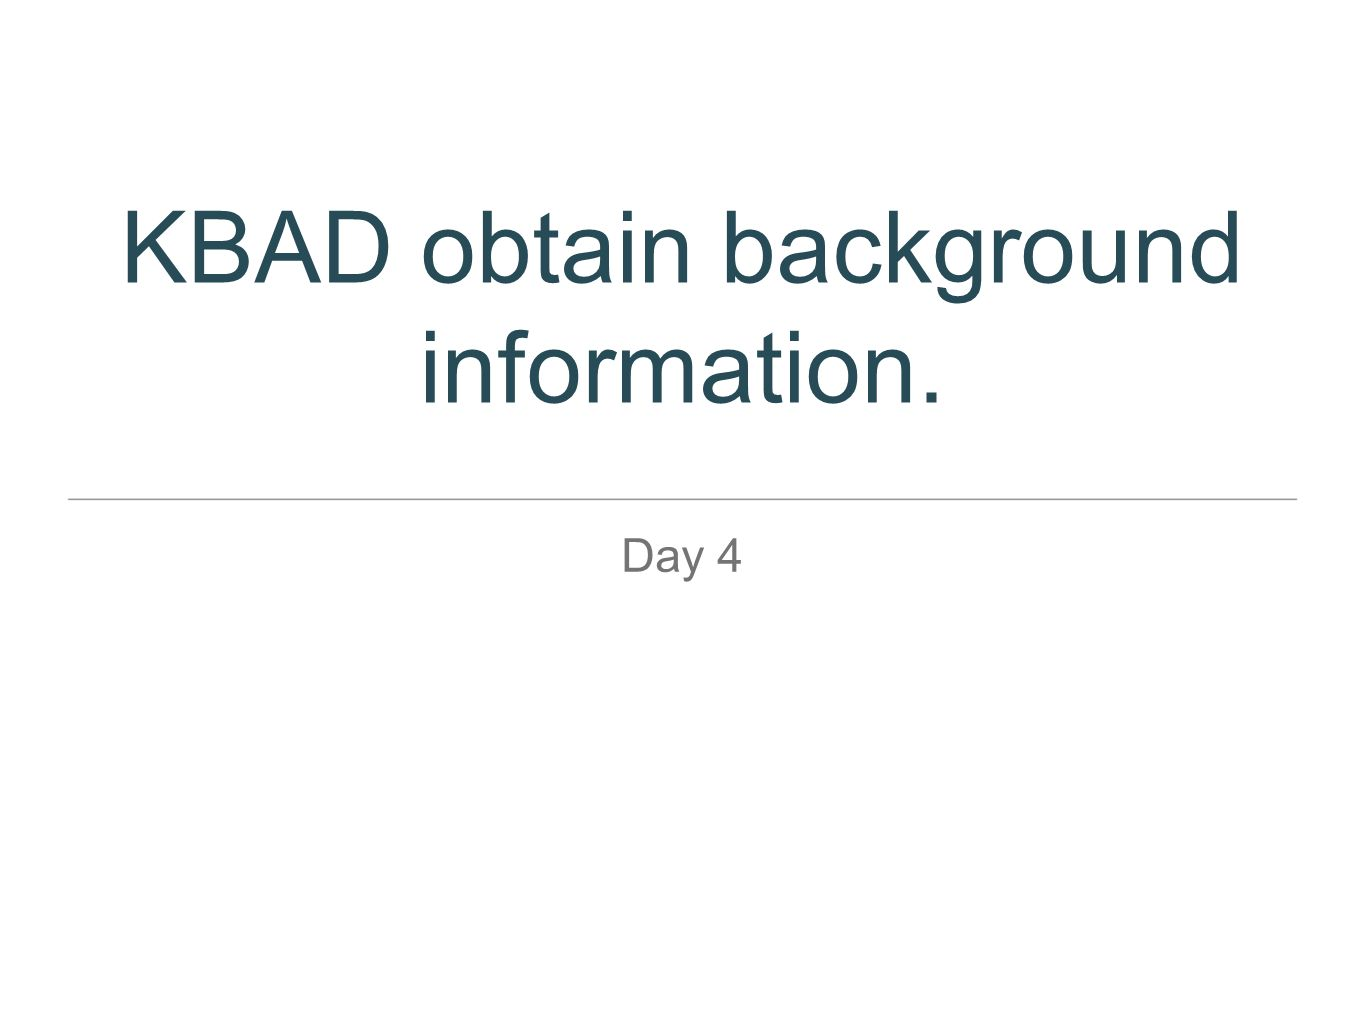 KBAD obtain background information.